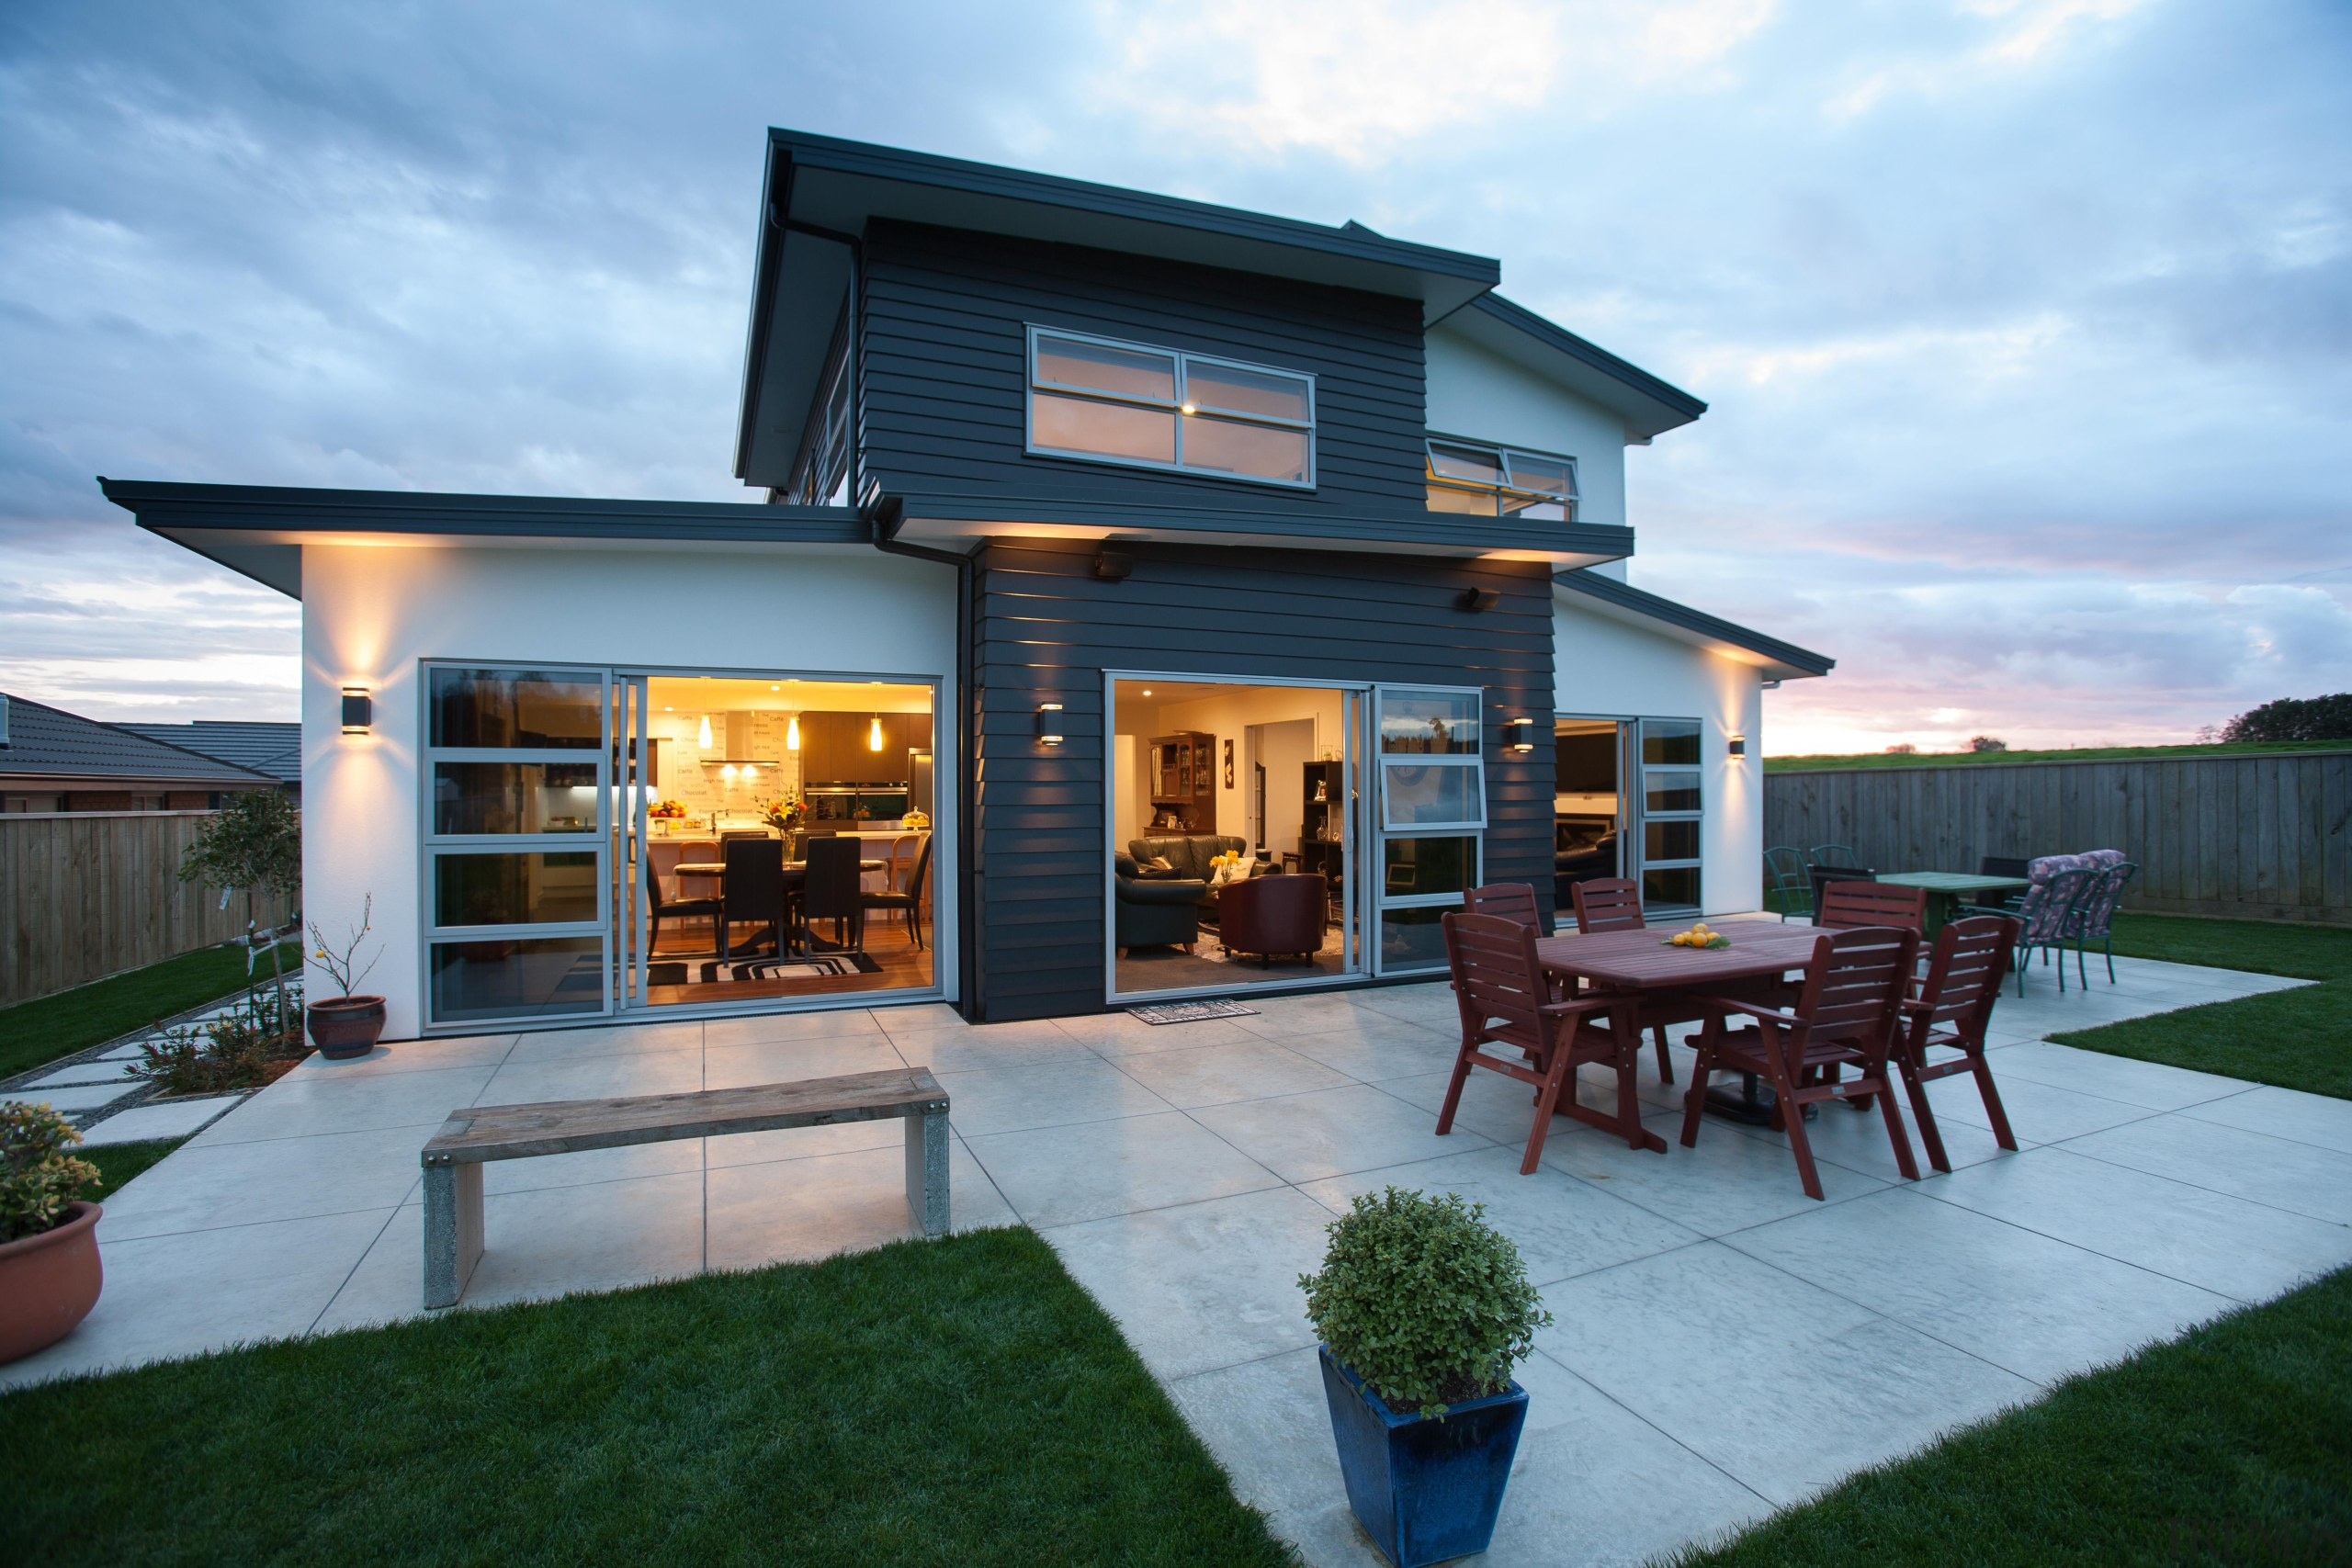 The rear view of this dual plaster and backyard, facade, home, house, property, real estate, teal